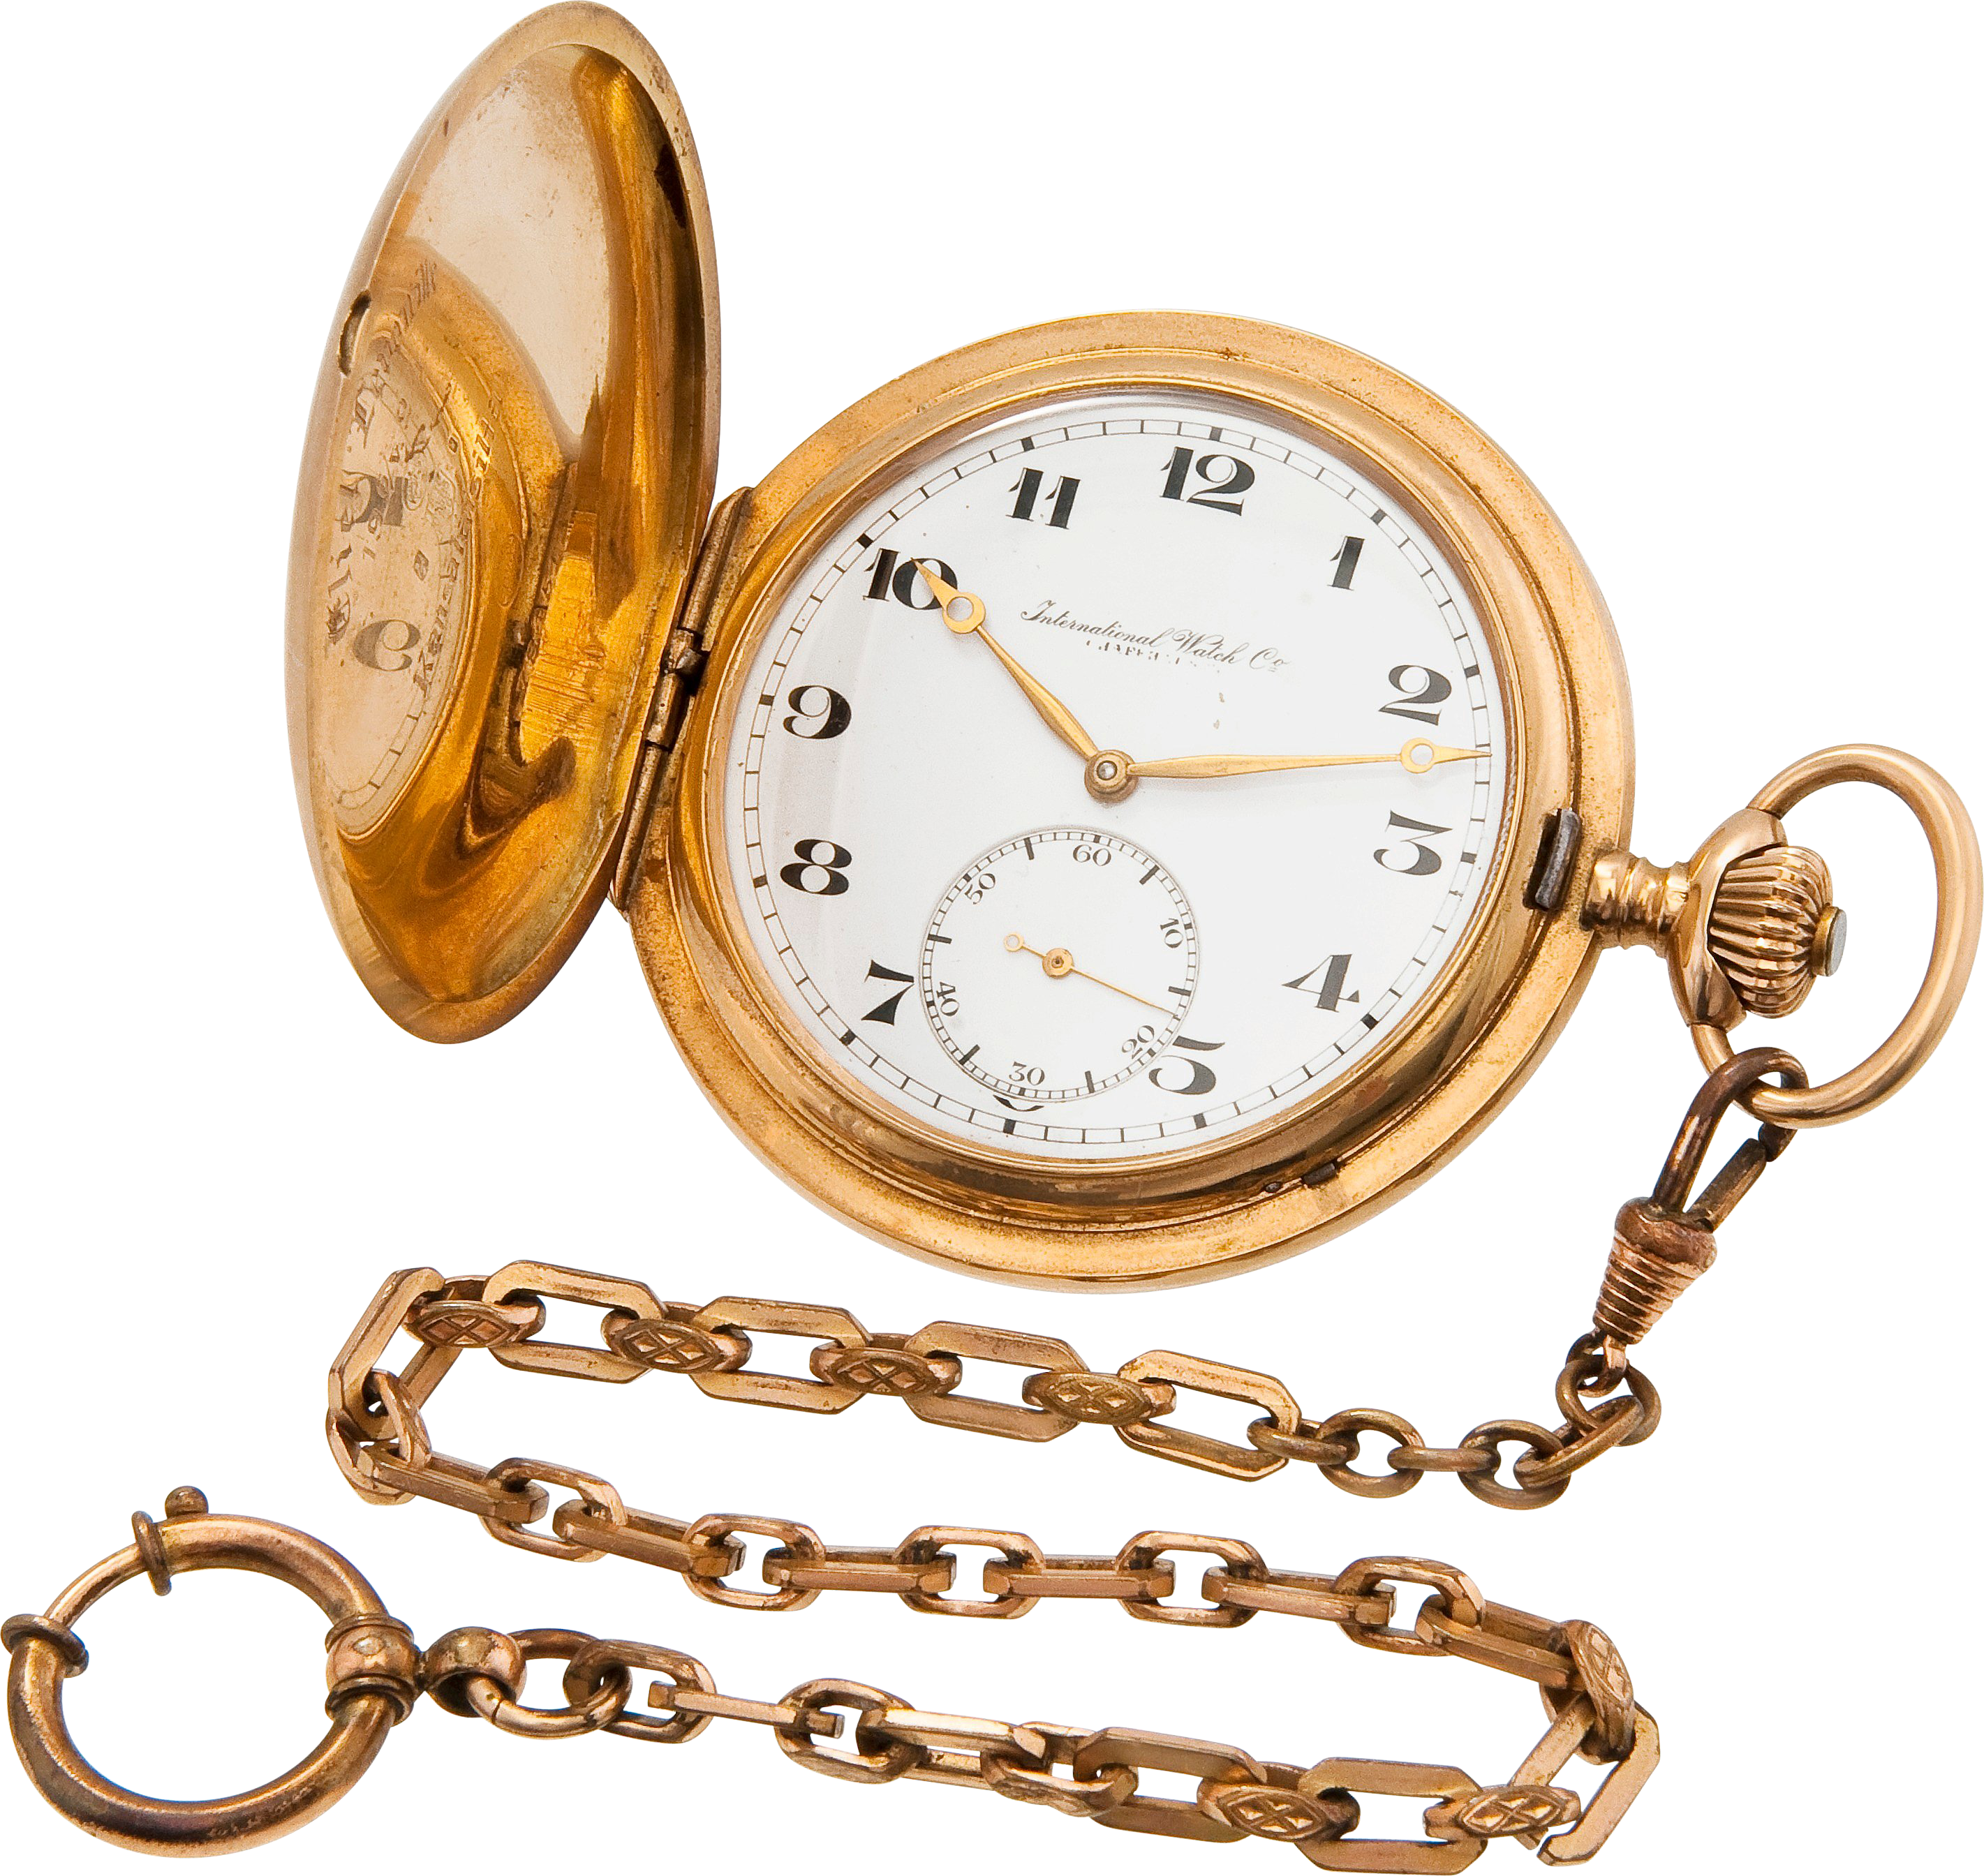 Golden Chain Stop Watch PNG Image Watch chain, Pocket